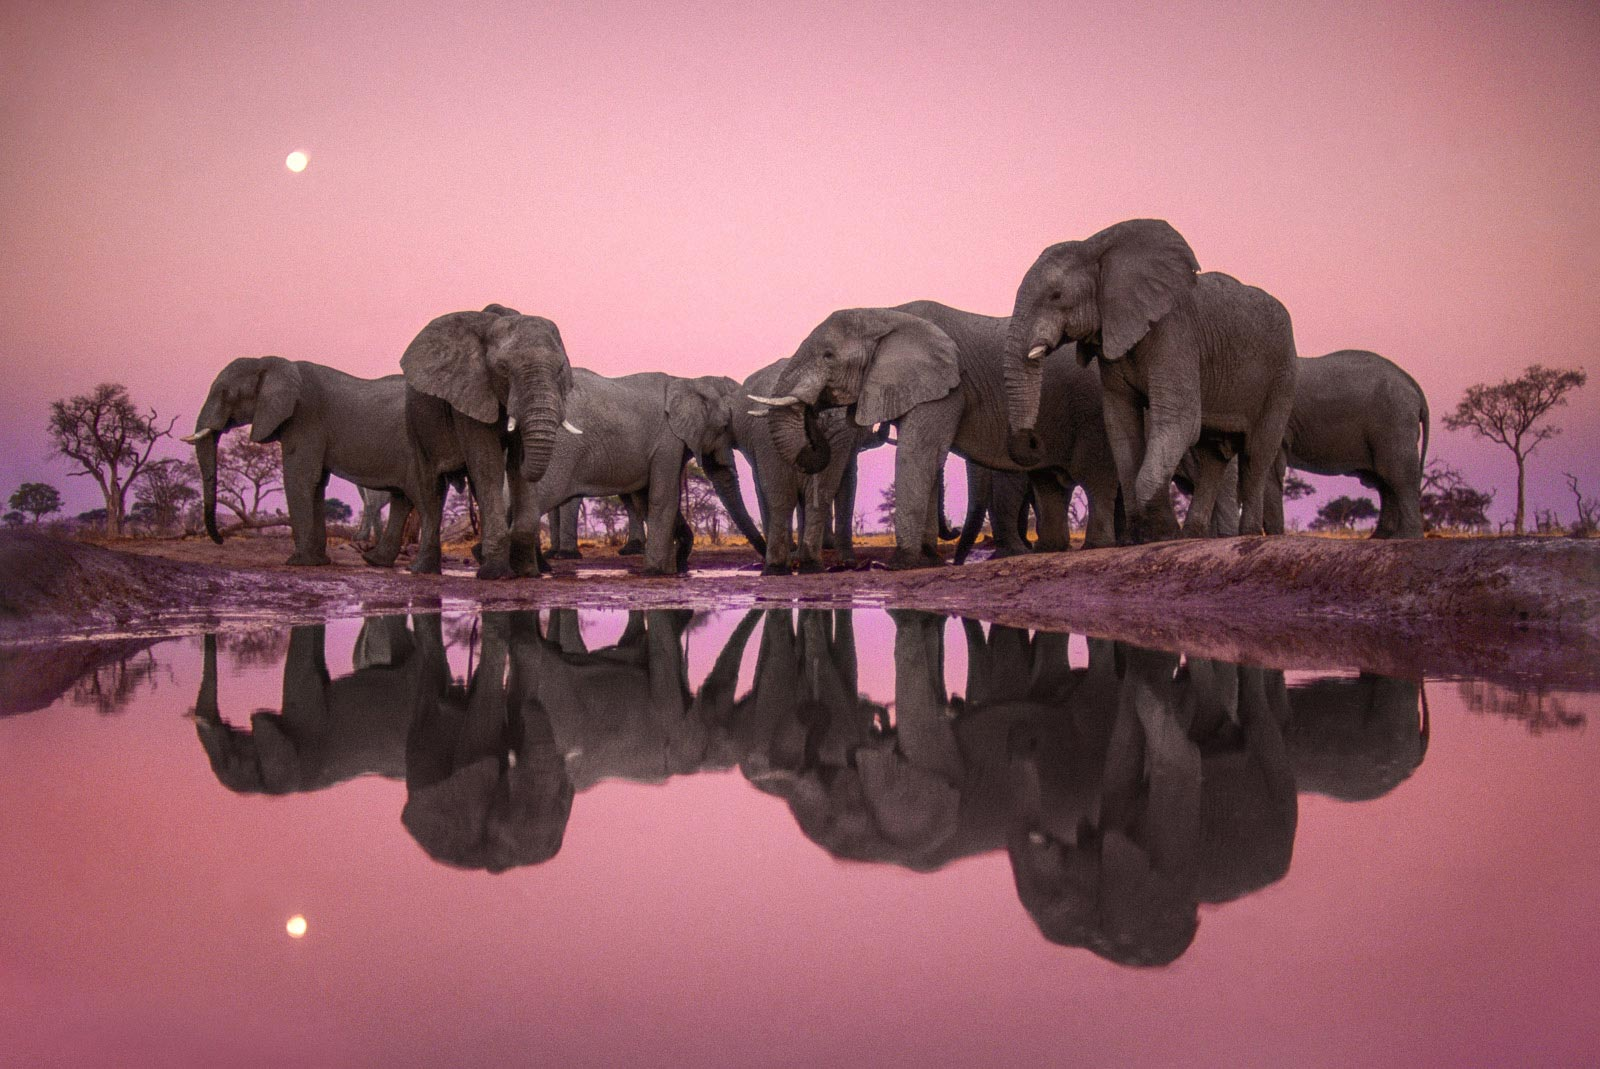 African elephants at twilight, Chobe National Park, Botswana